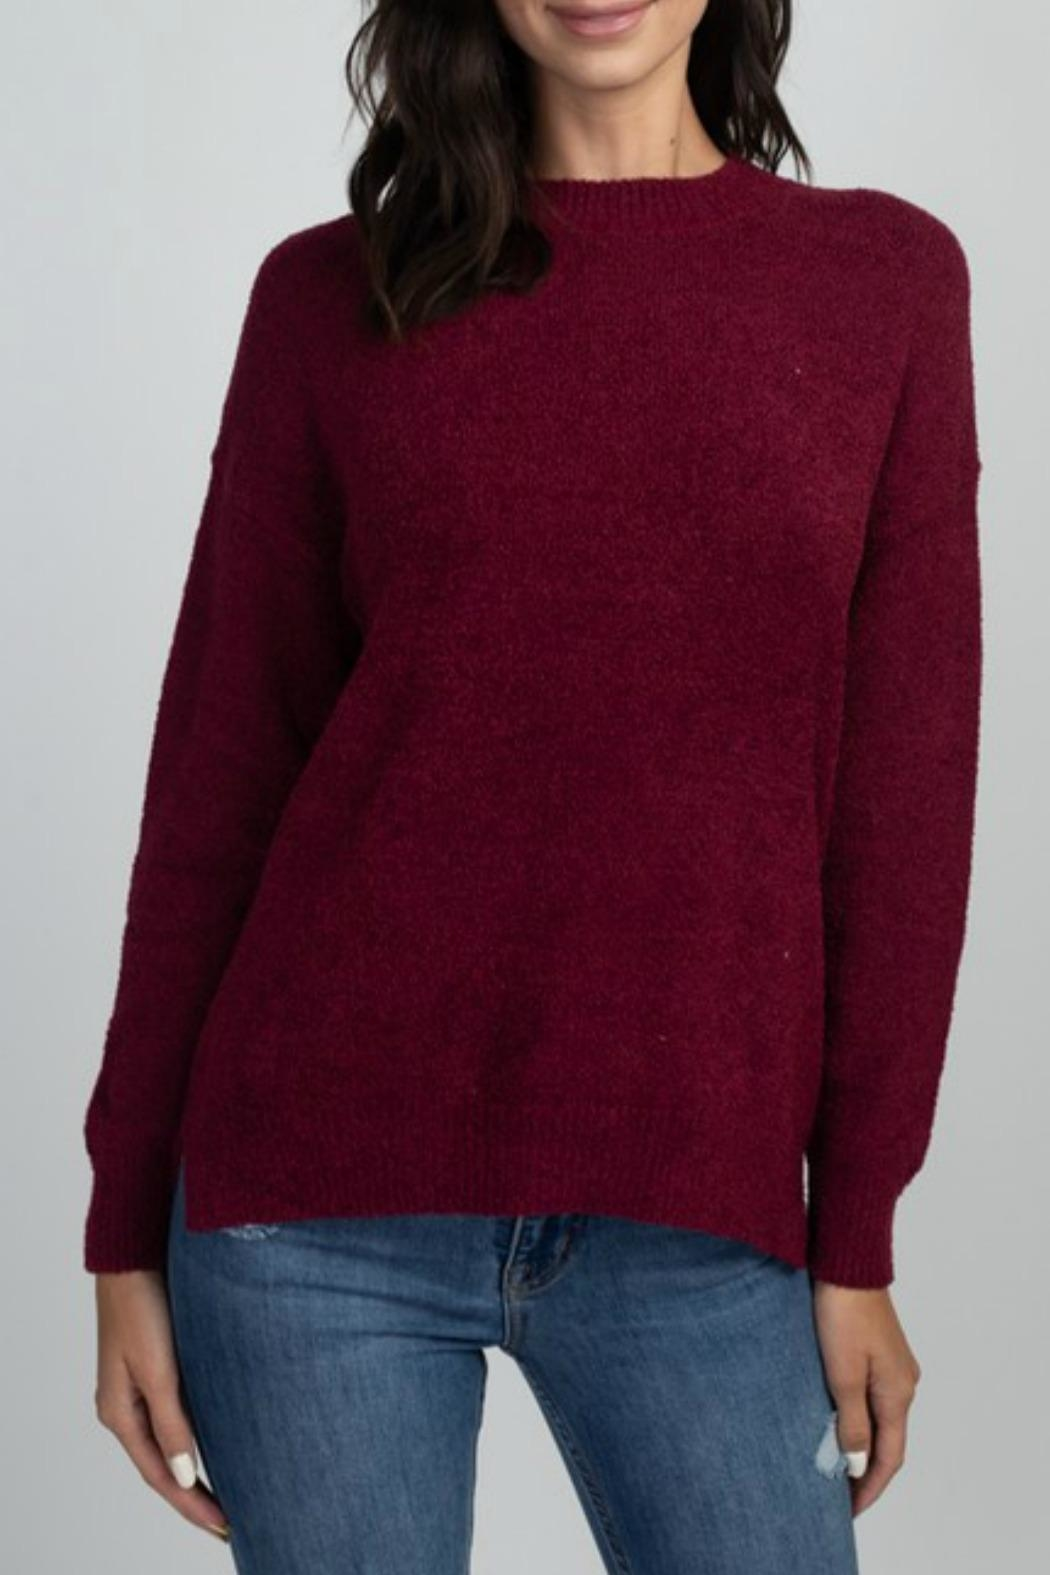 Dreamers Brie Sweater - Main Image